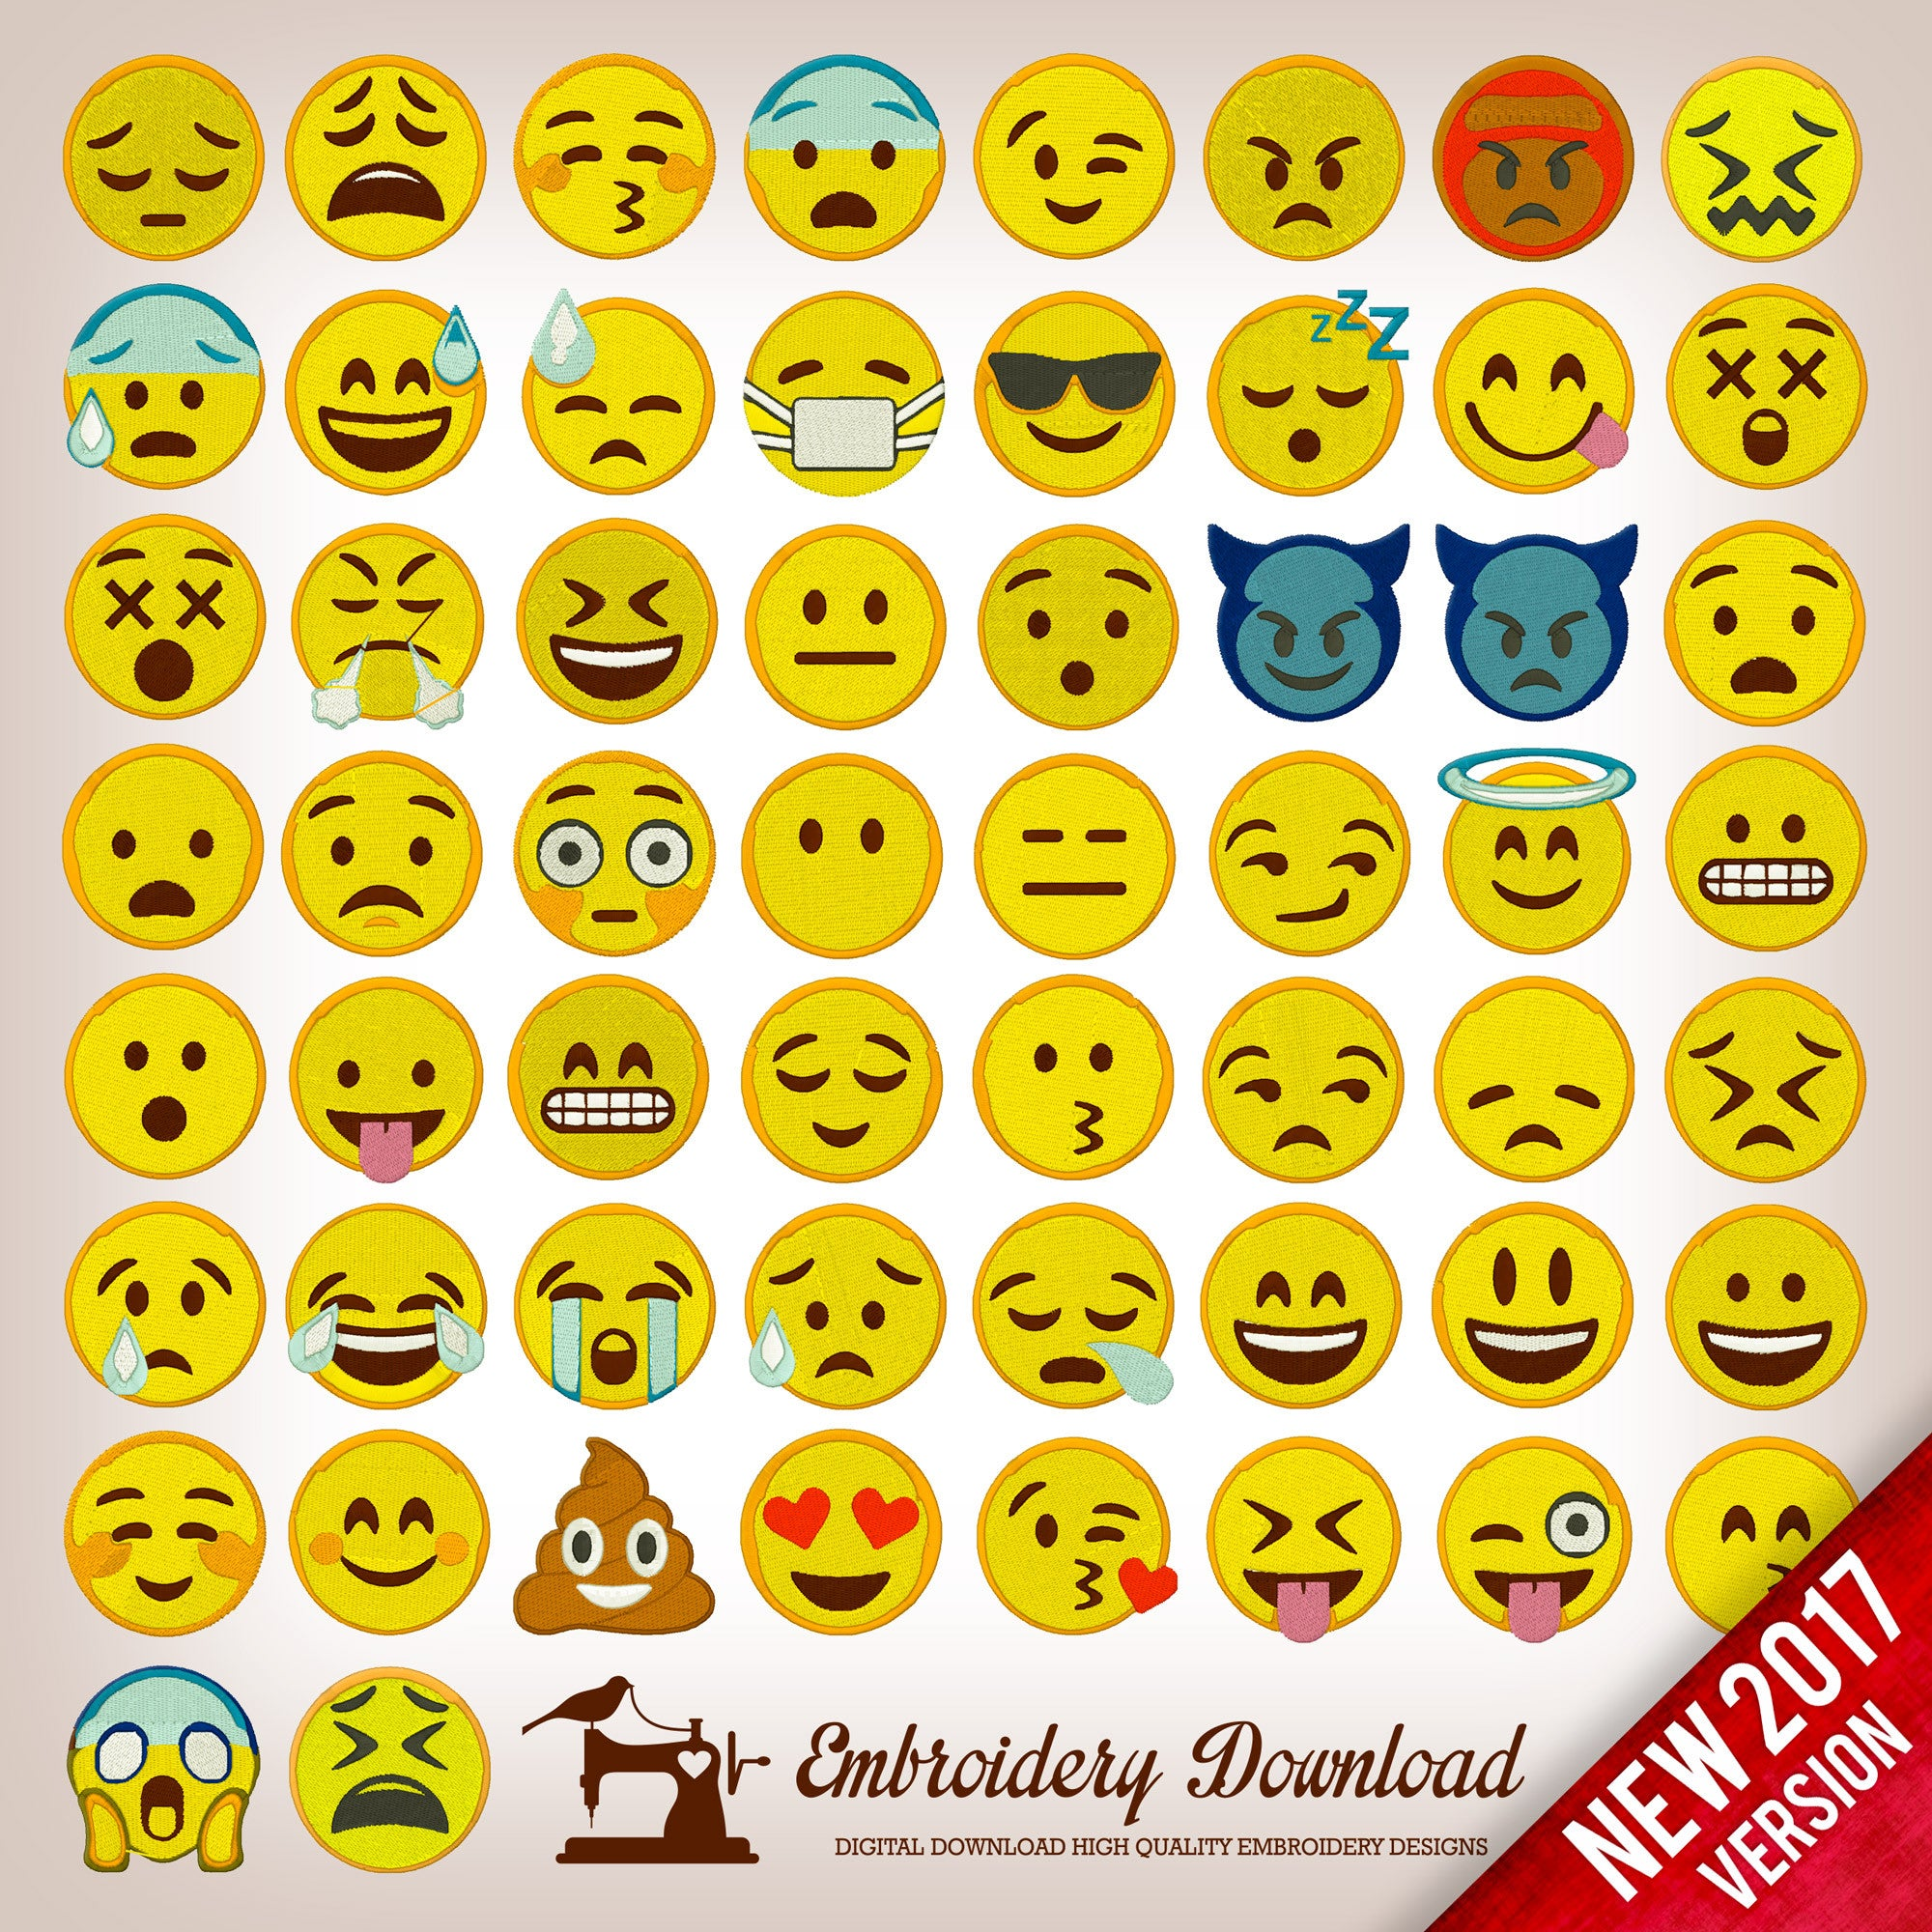 Embroidery Designs Emoticons Emoji Pack 58 designs instant download